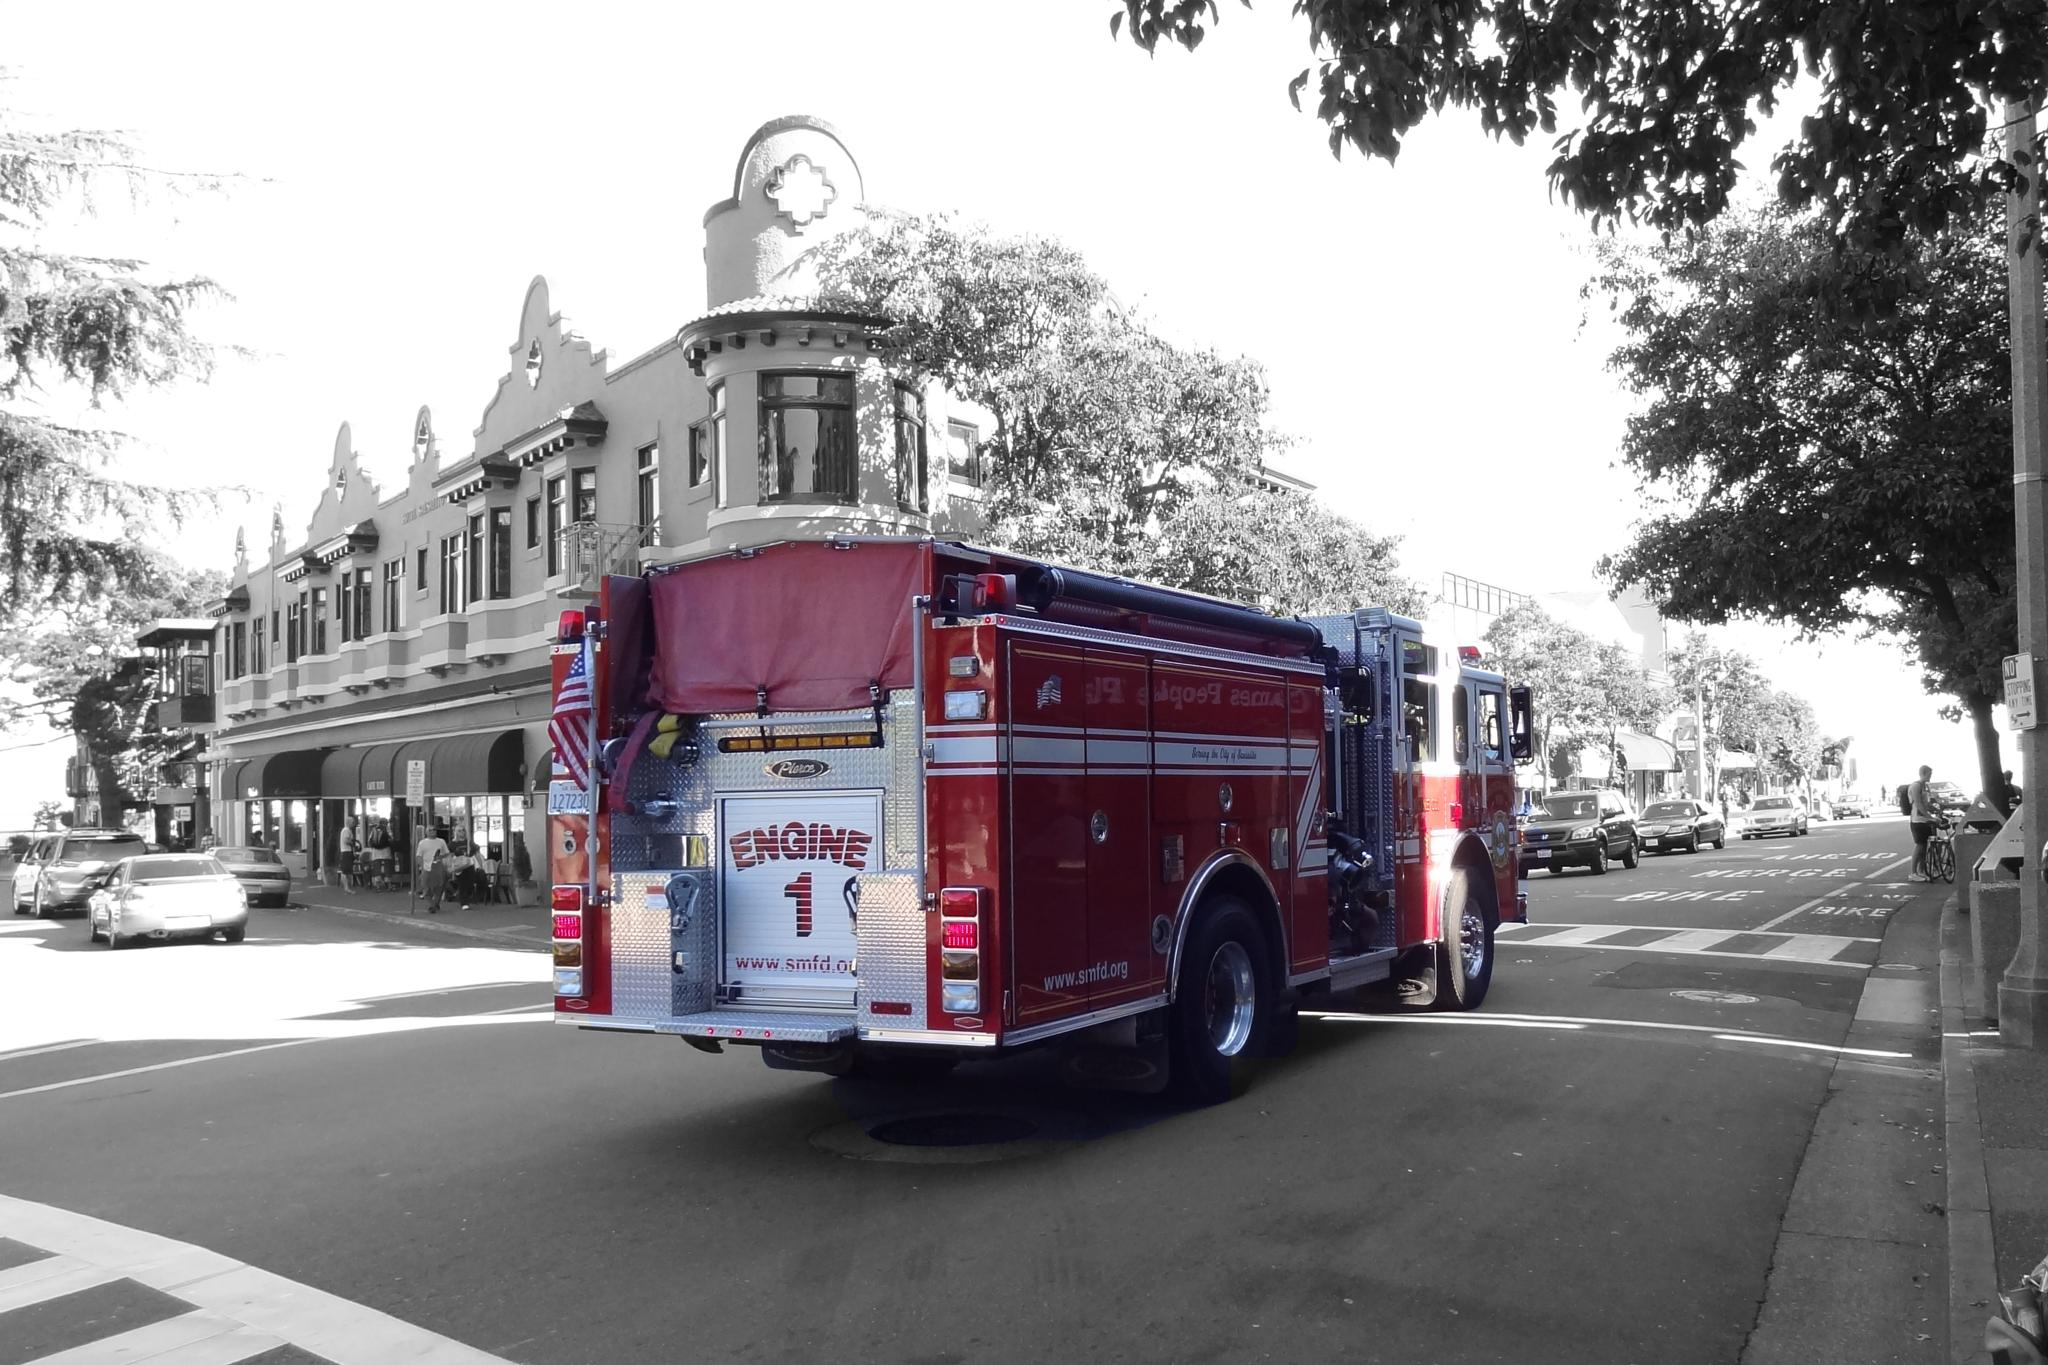 Sausalito fire engine rushing by by Diana du Parand